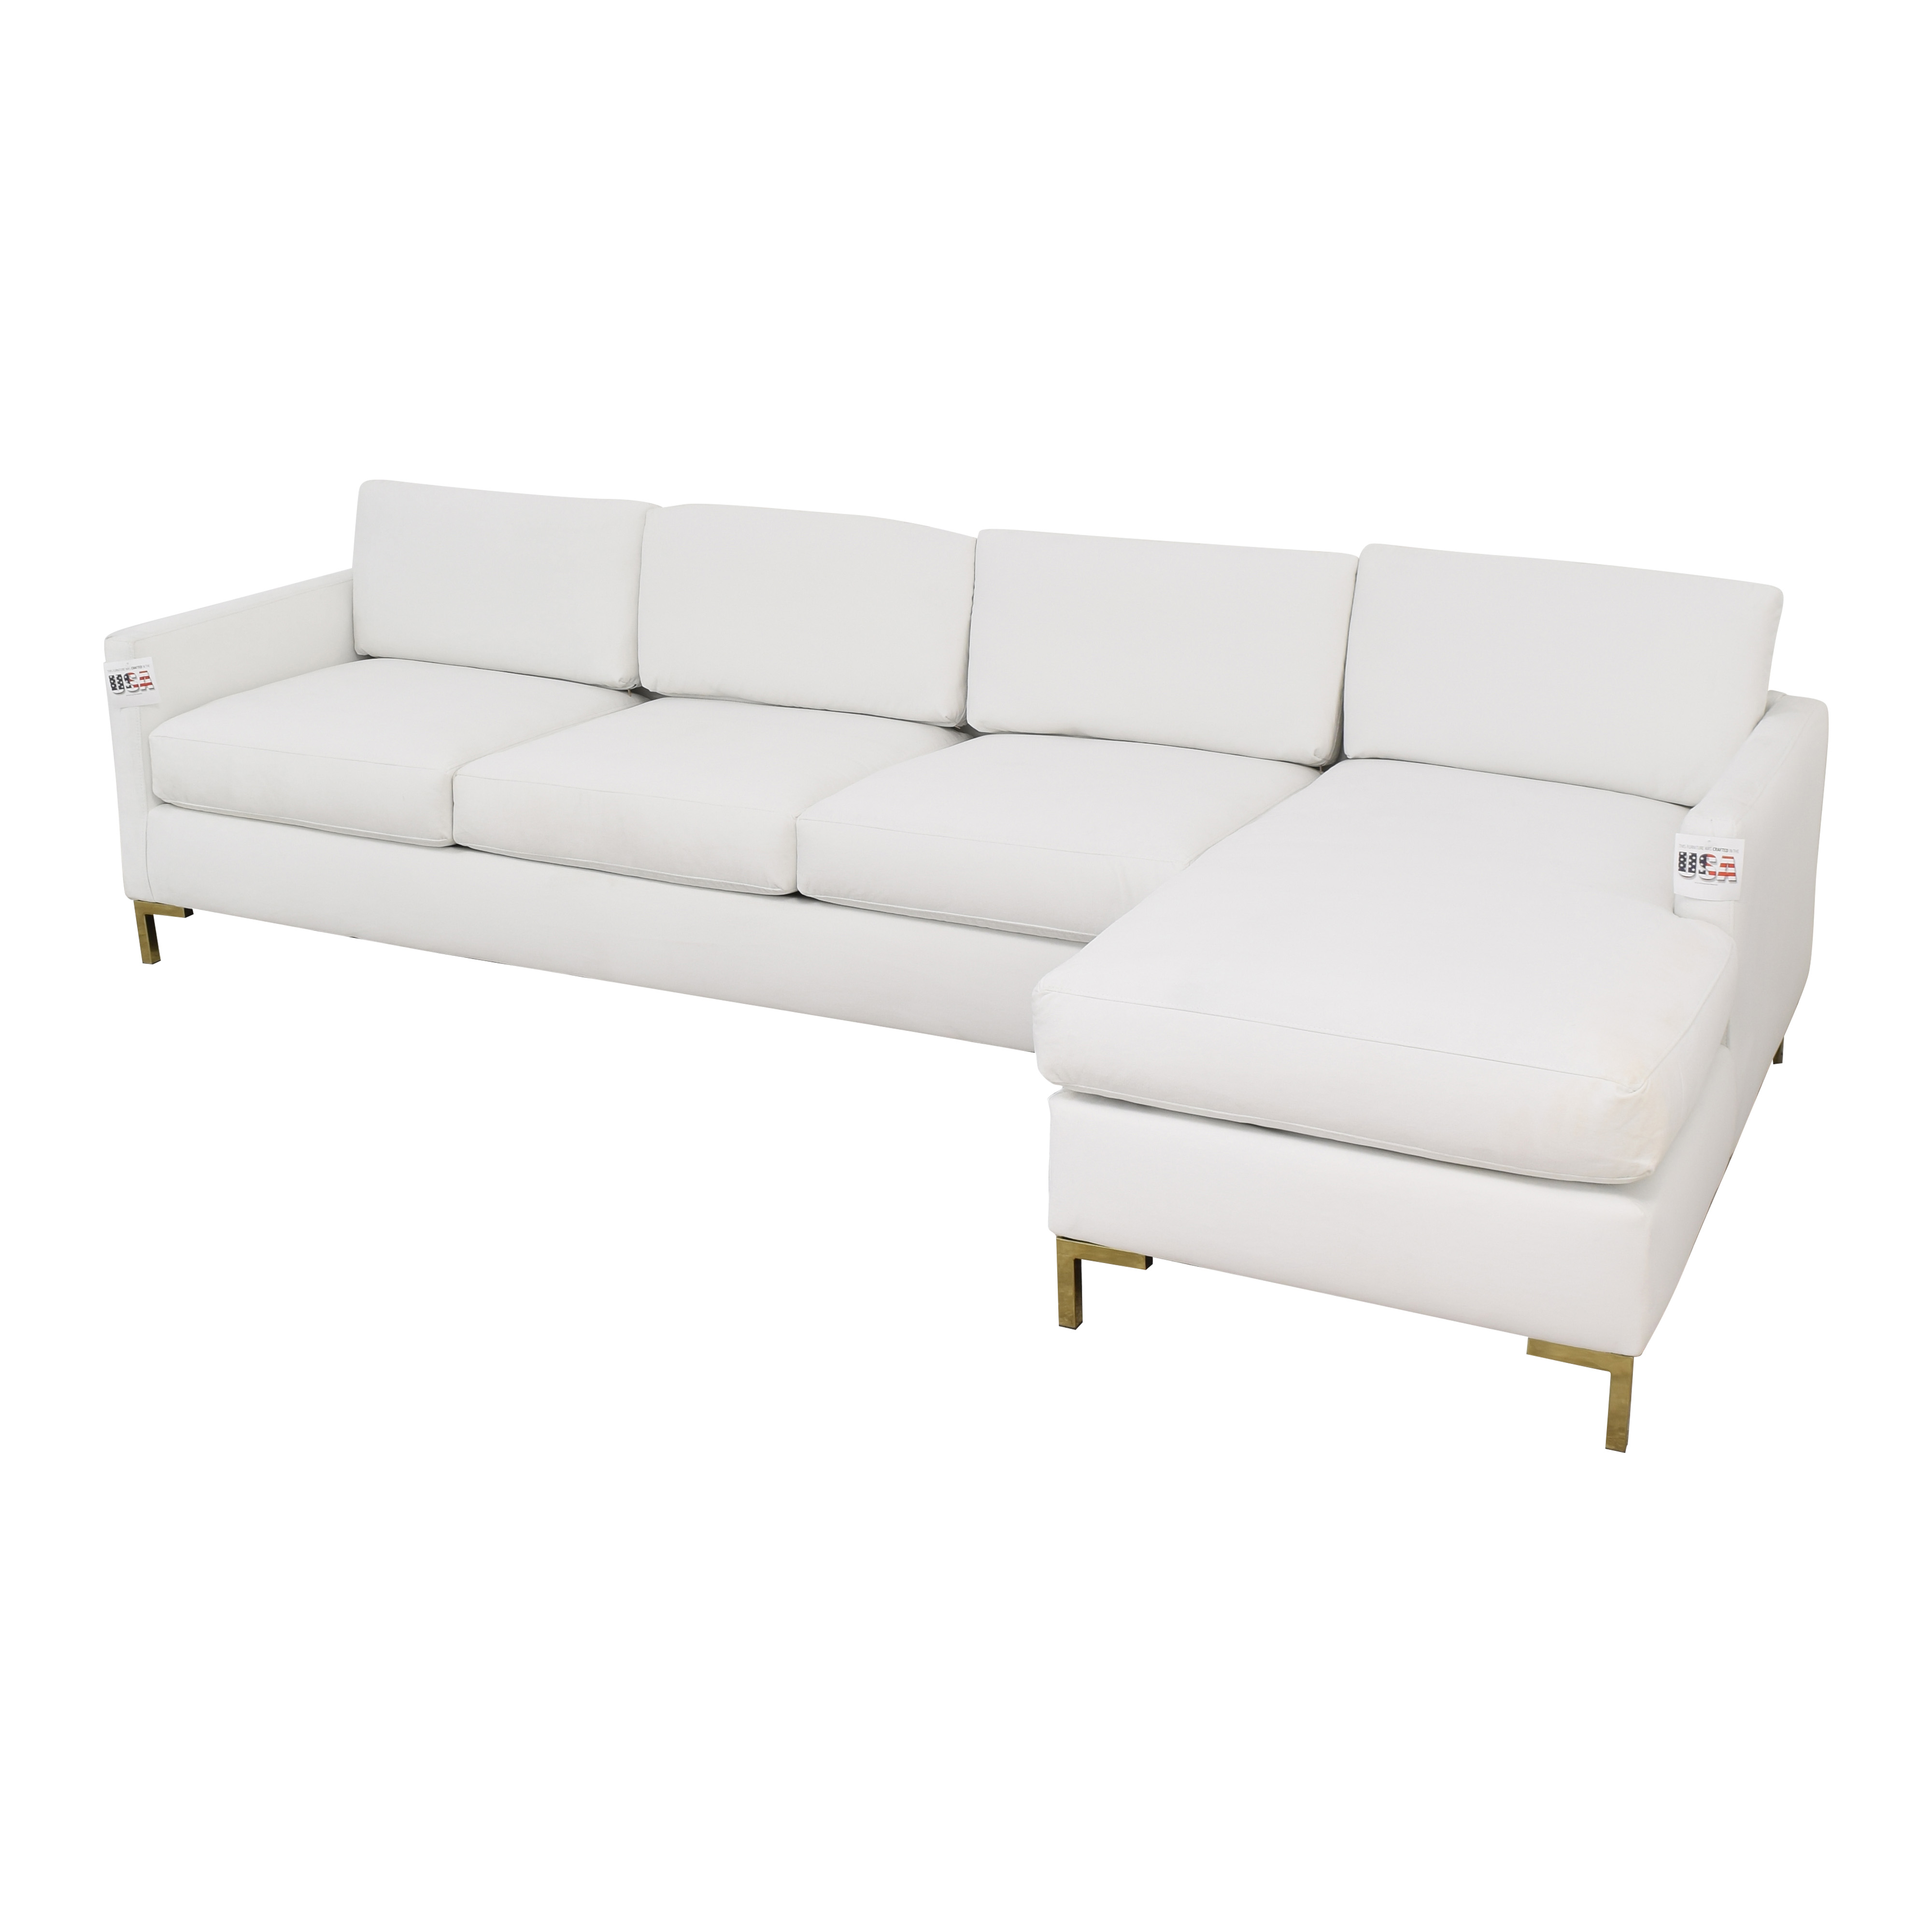 The Inside The Inside Modern Sectional-Right Facing Sofa nyc